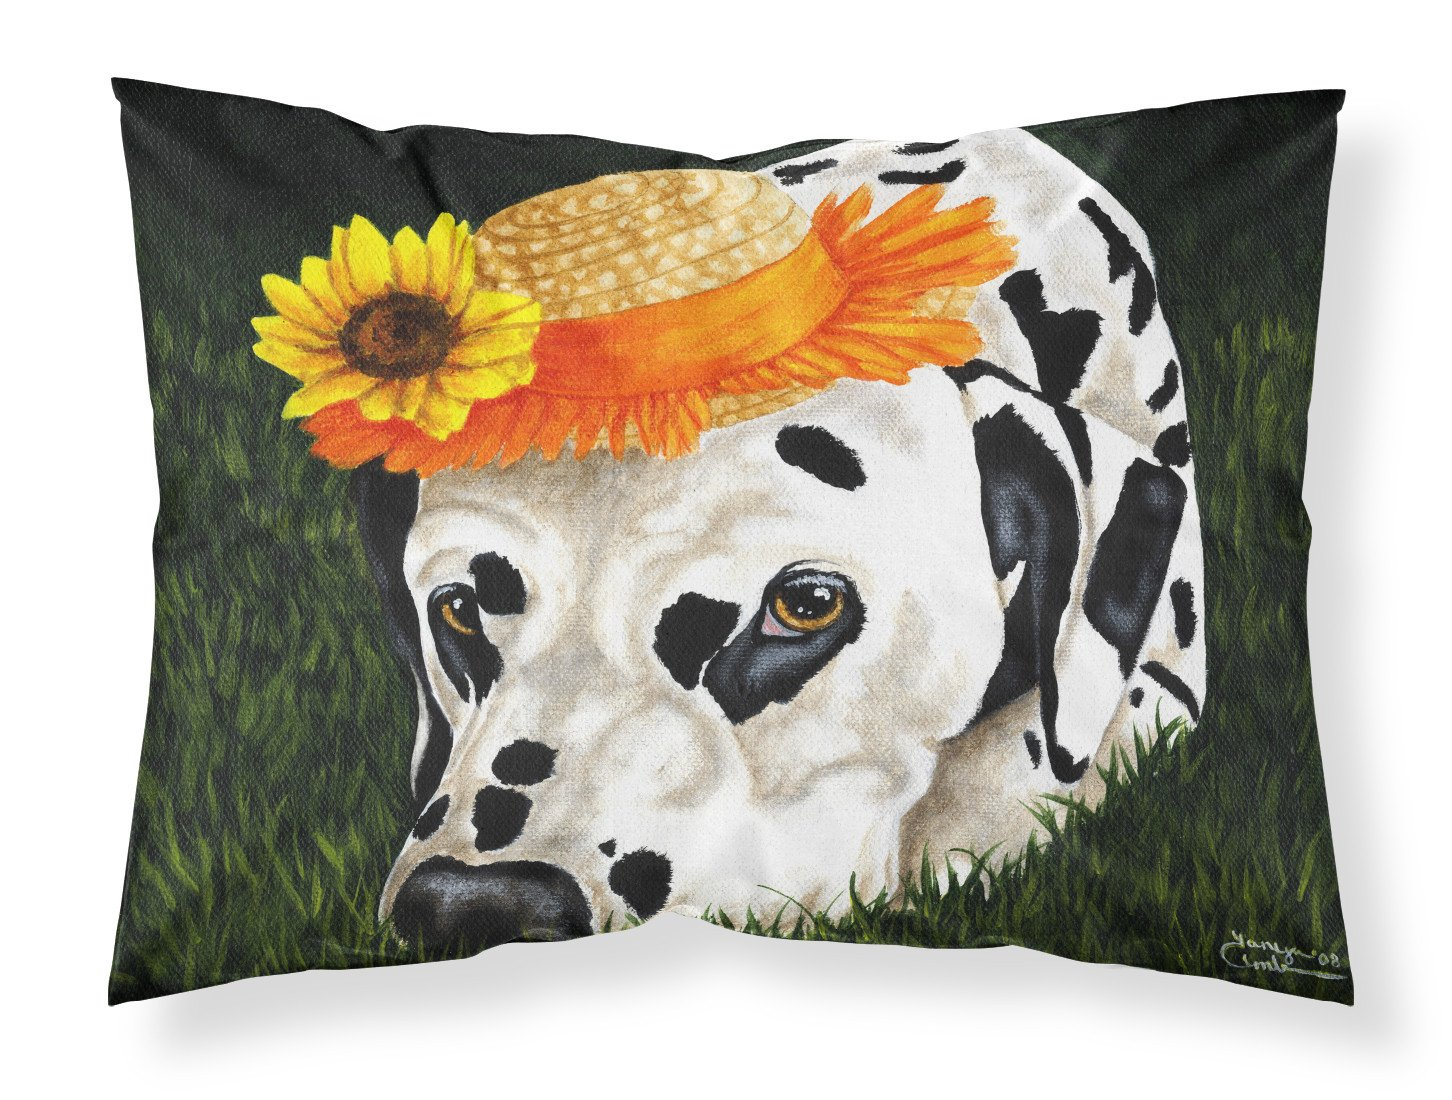 Buy this My Sun Spot Dalmatian Fabric Standard Pillowcase AMB1340PILLOWCASE